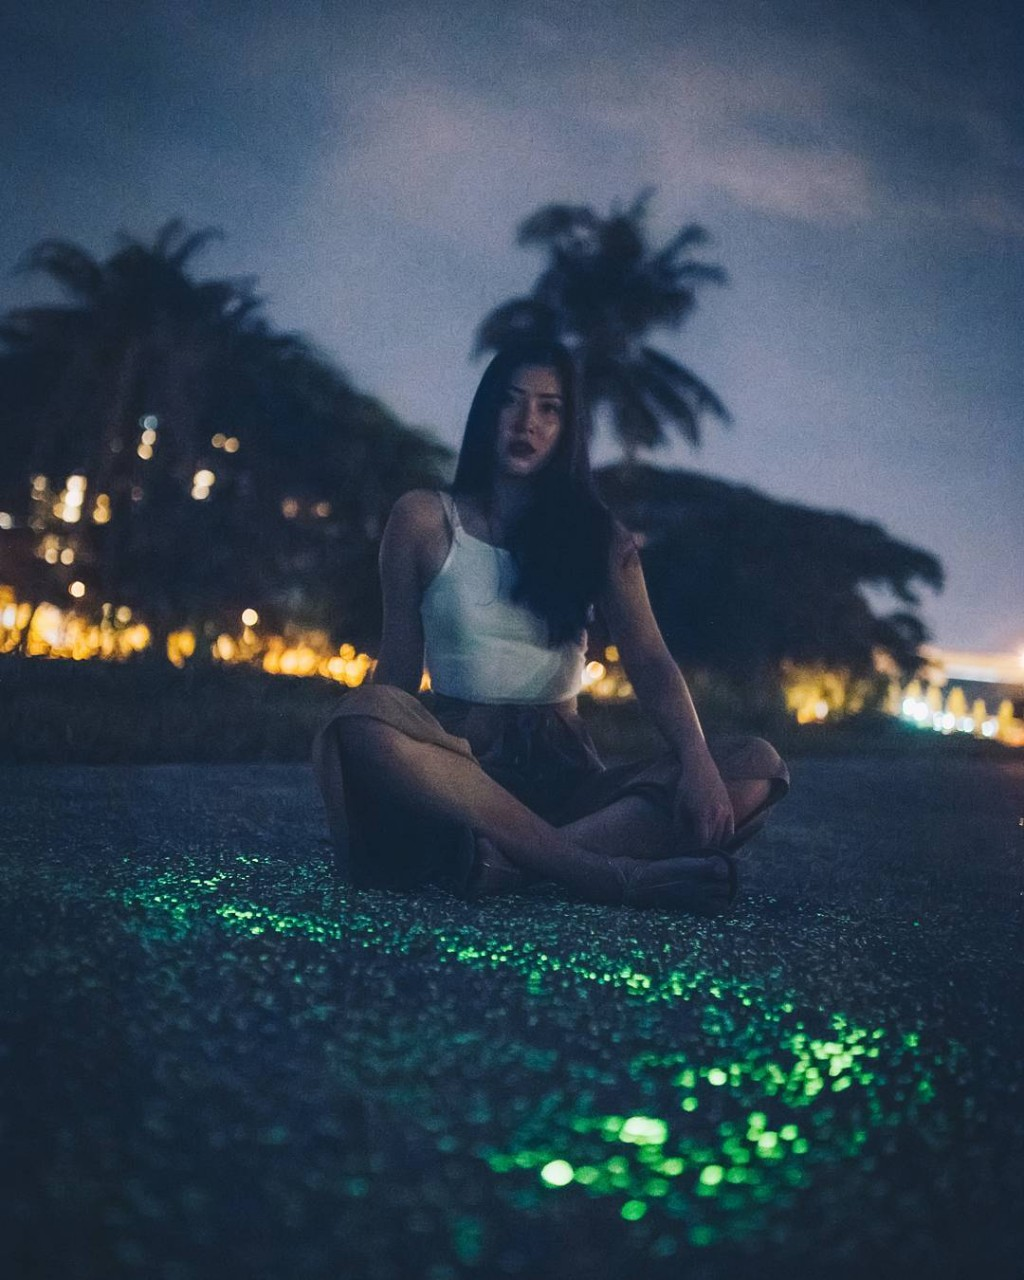 speed dating in the dark singapore Where to find girls in hong kong (plus 9 dating tips)  and it has a dark side  the ladies market and speed dating events are the best pick up joints in hong kong.